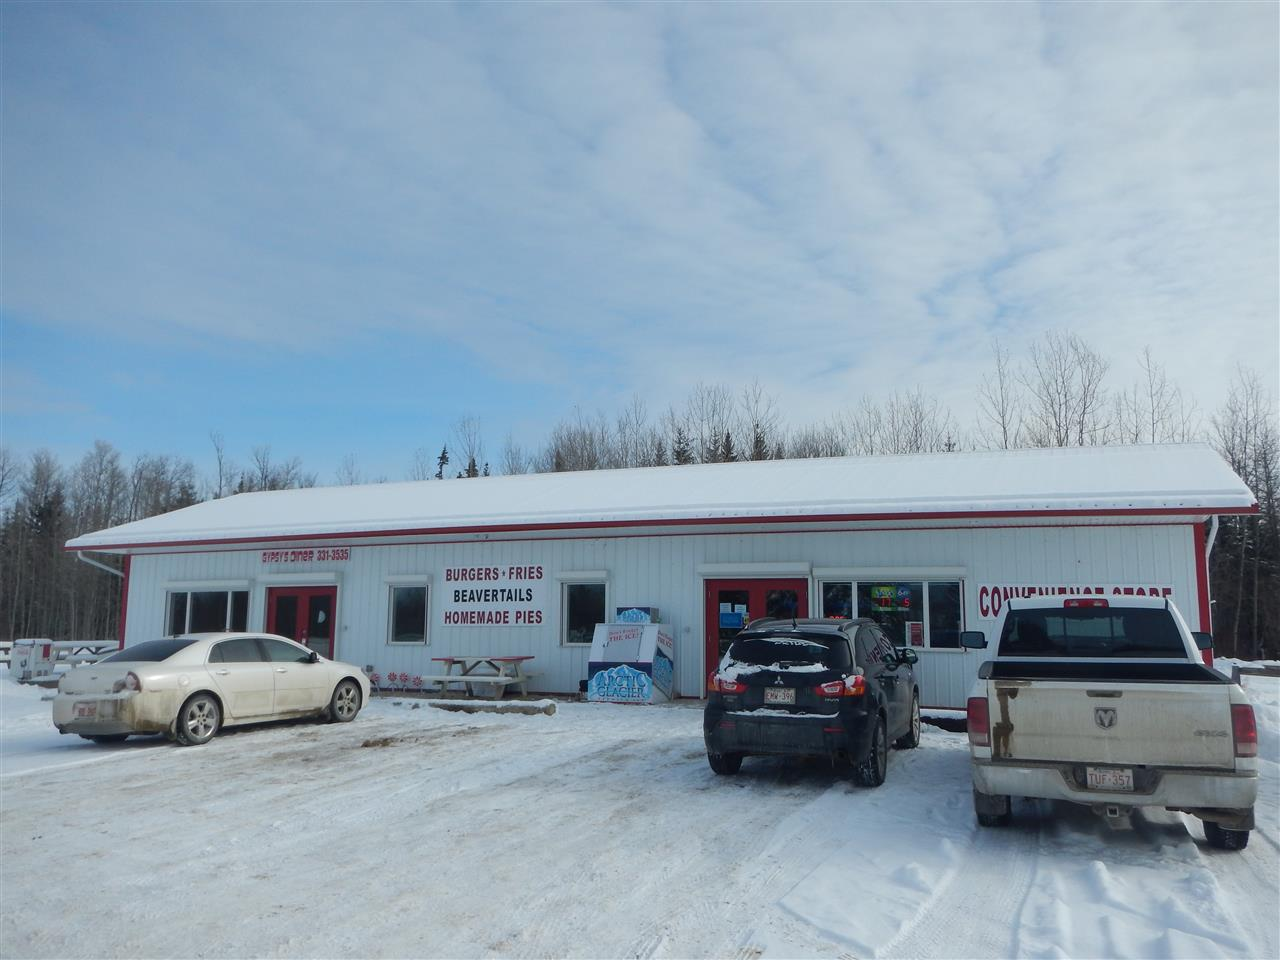 1900 B Secondary rd 813, at $580,000